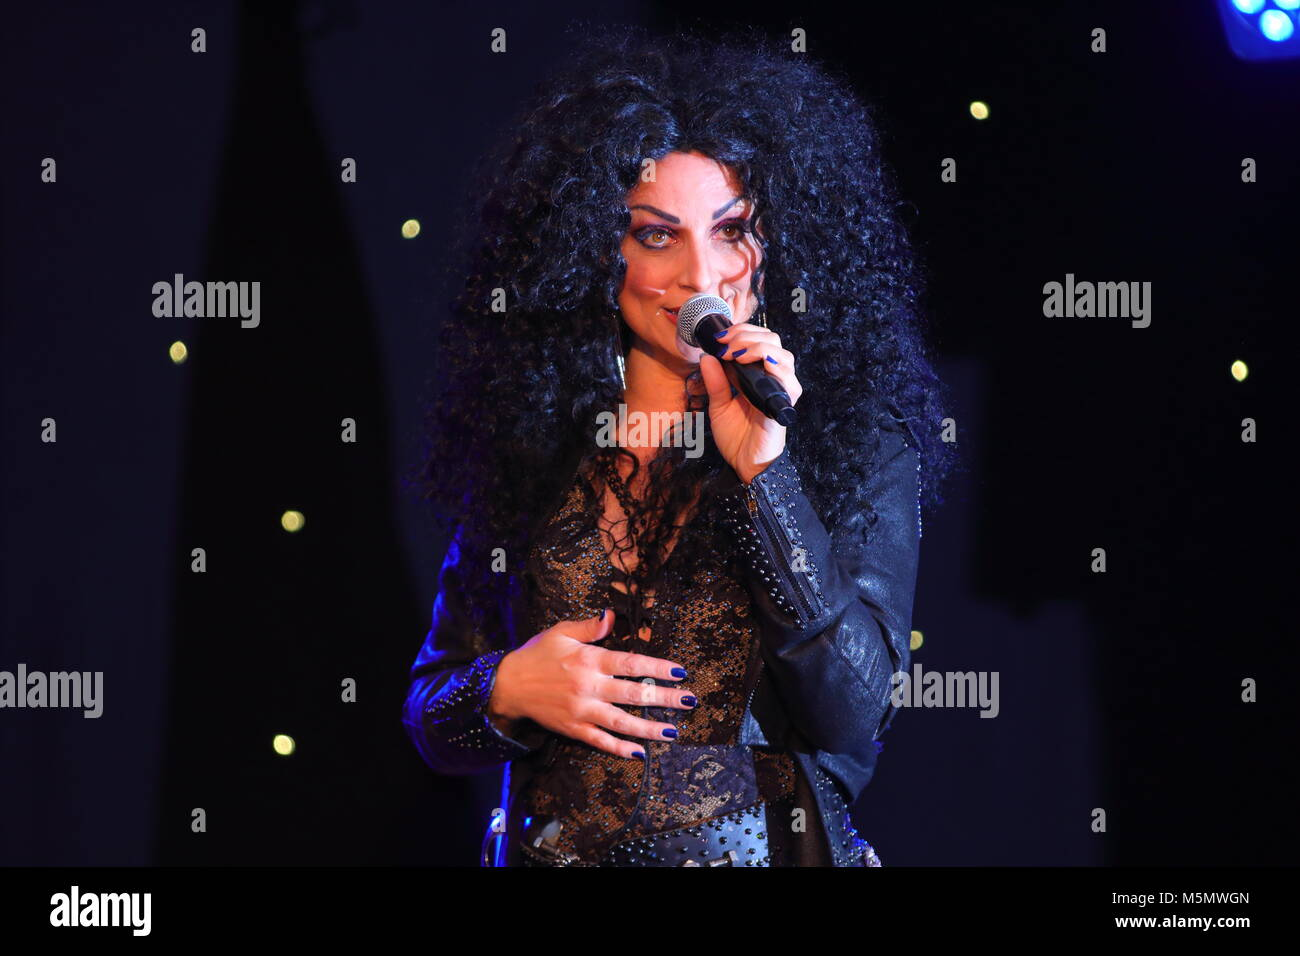 Tania Alboni performing  her Cher tribute act during The Ultimate Tribute Show at Swillington Miners Welfare Club - Stock Image